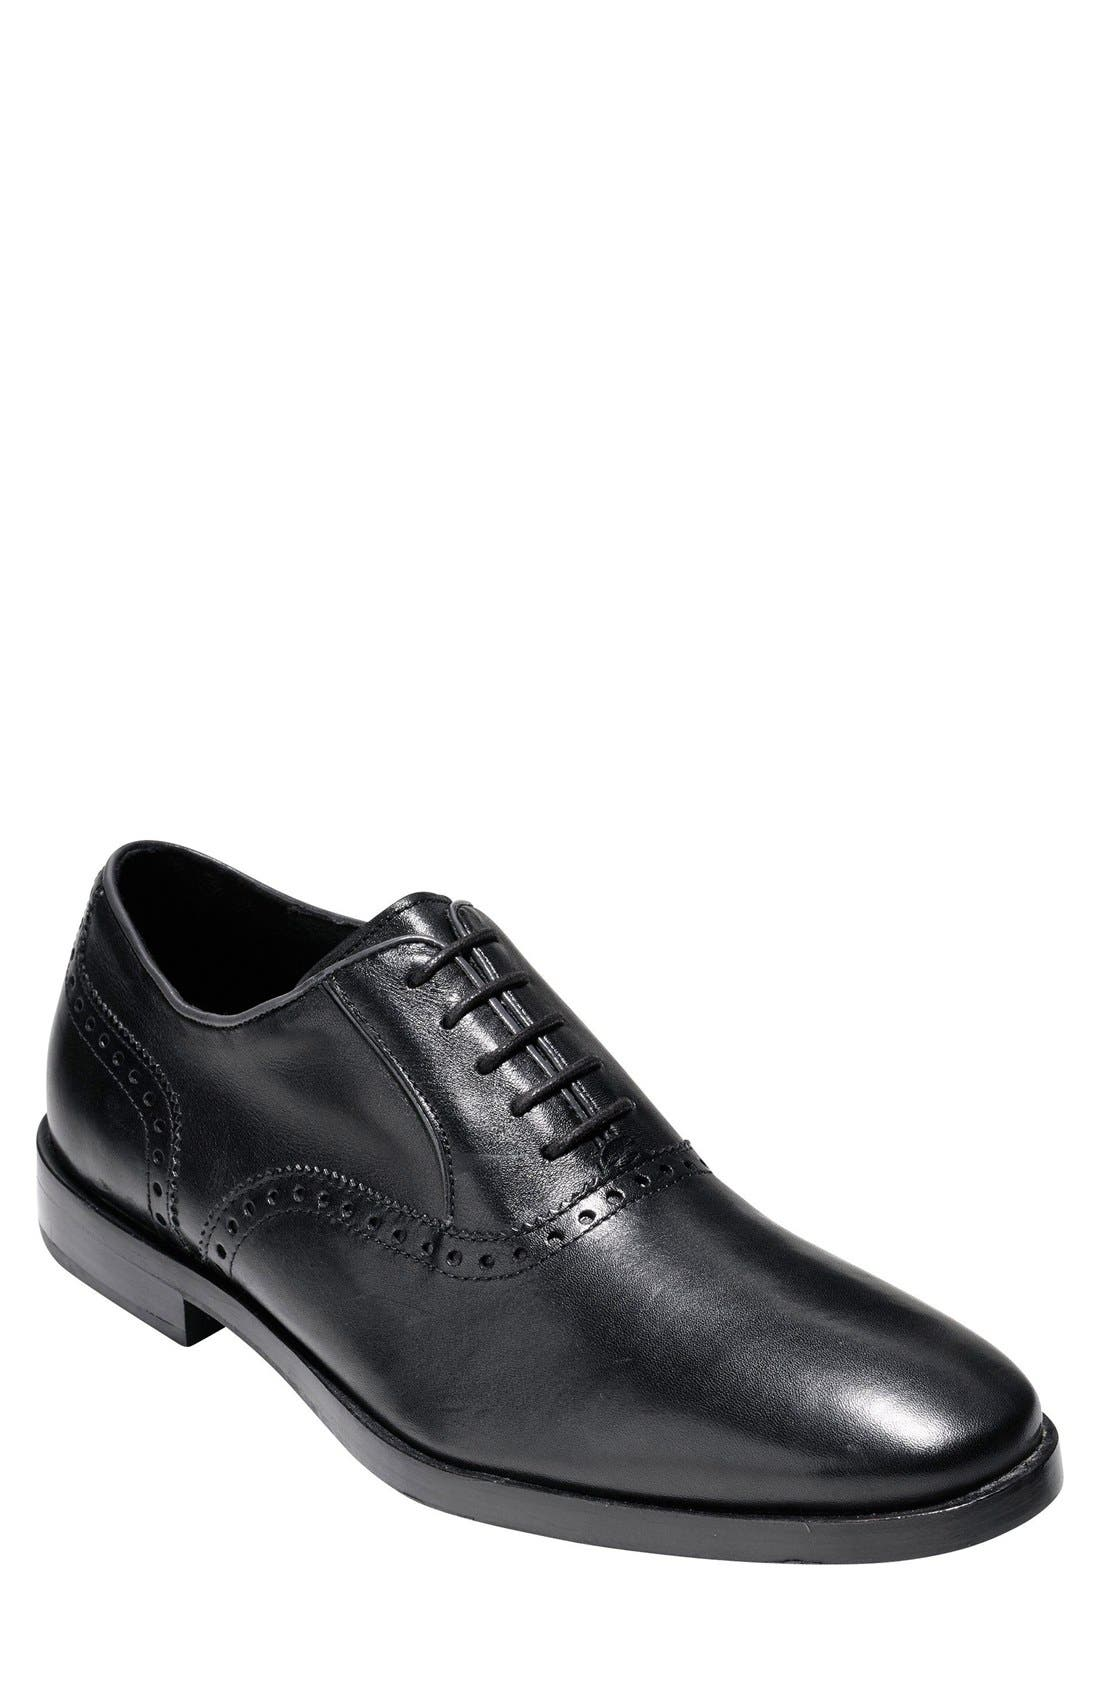 Main Image - Cole Haan 'Hamilton Grand' Plain Toe Oxford (Men)